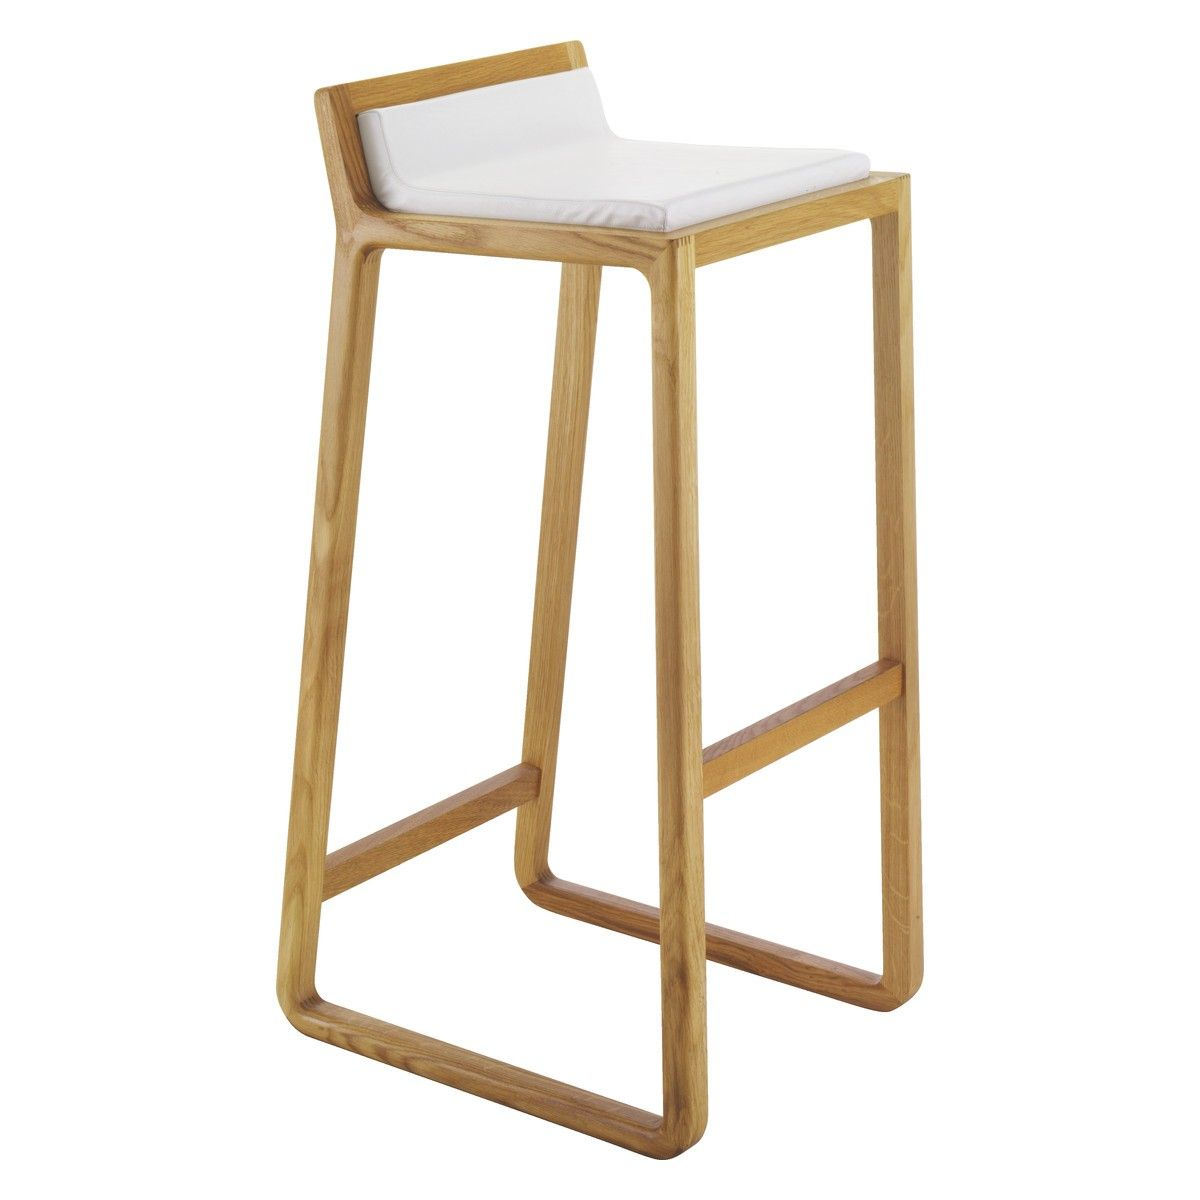 JOE Solid oak bar stool with leather upholstered seat